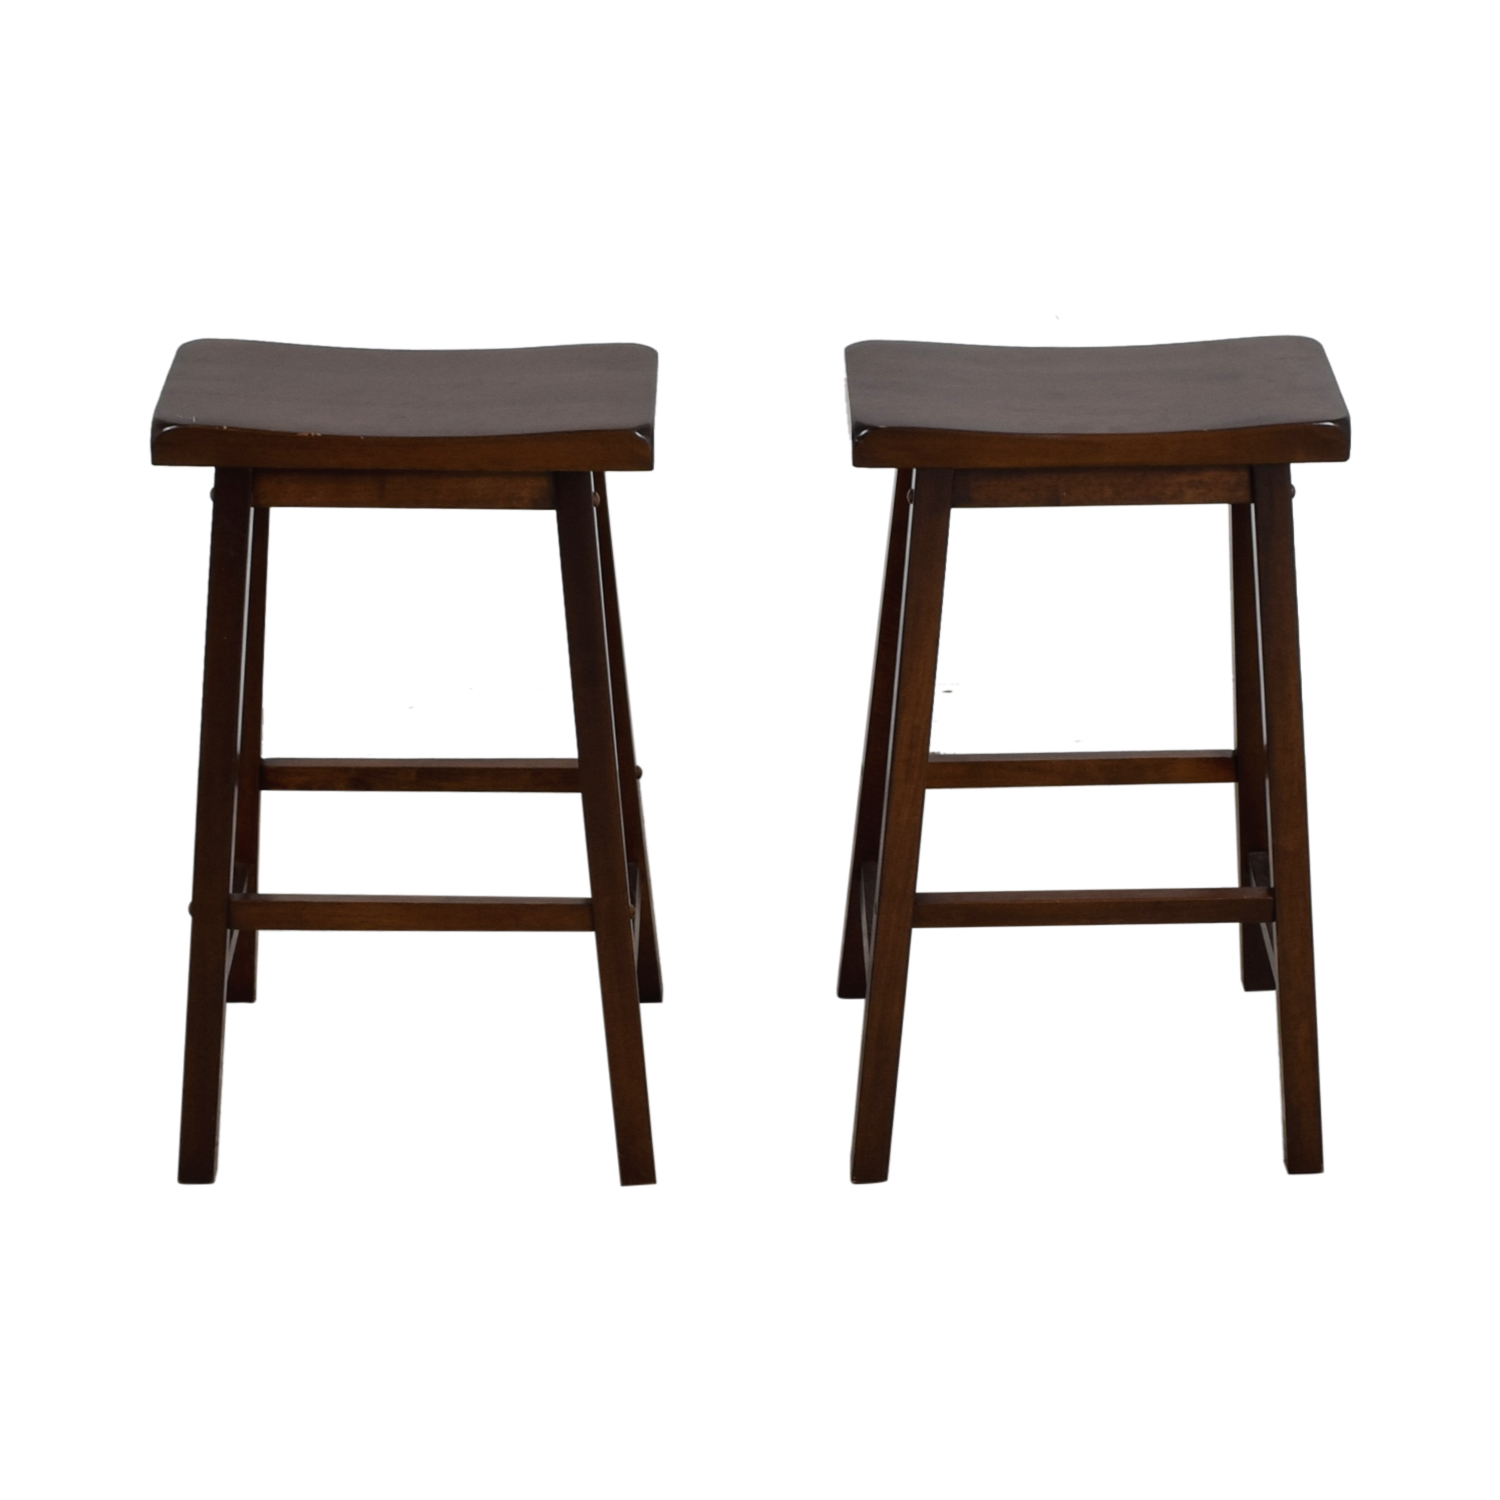 shop Curved Seat Wood Stools Stools